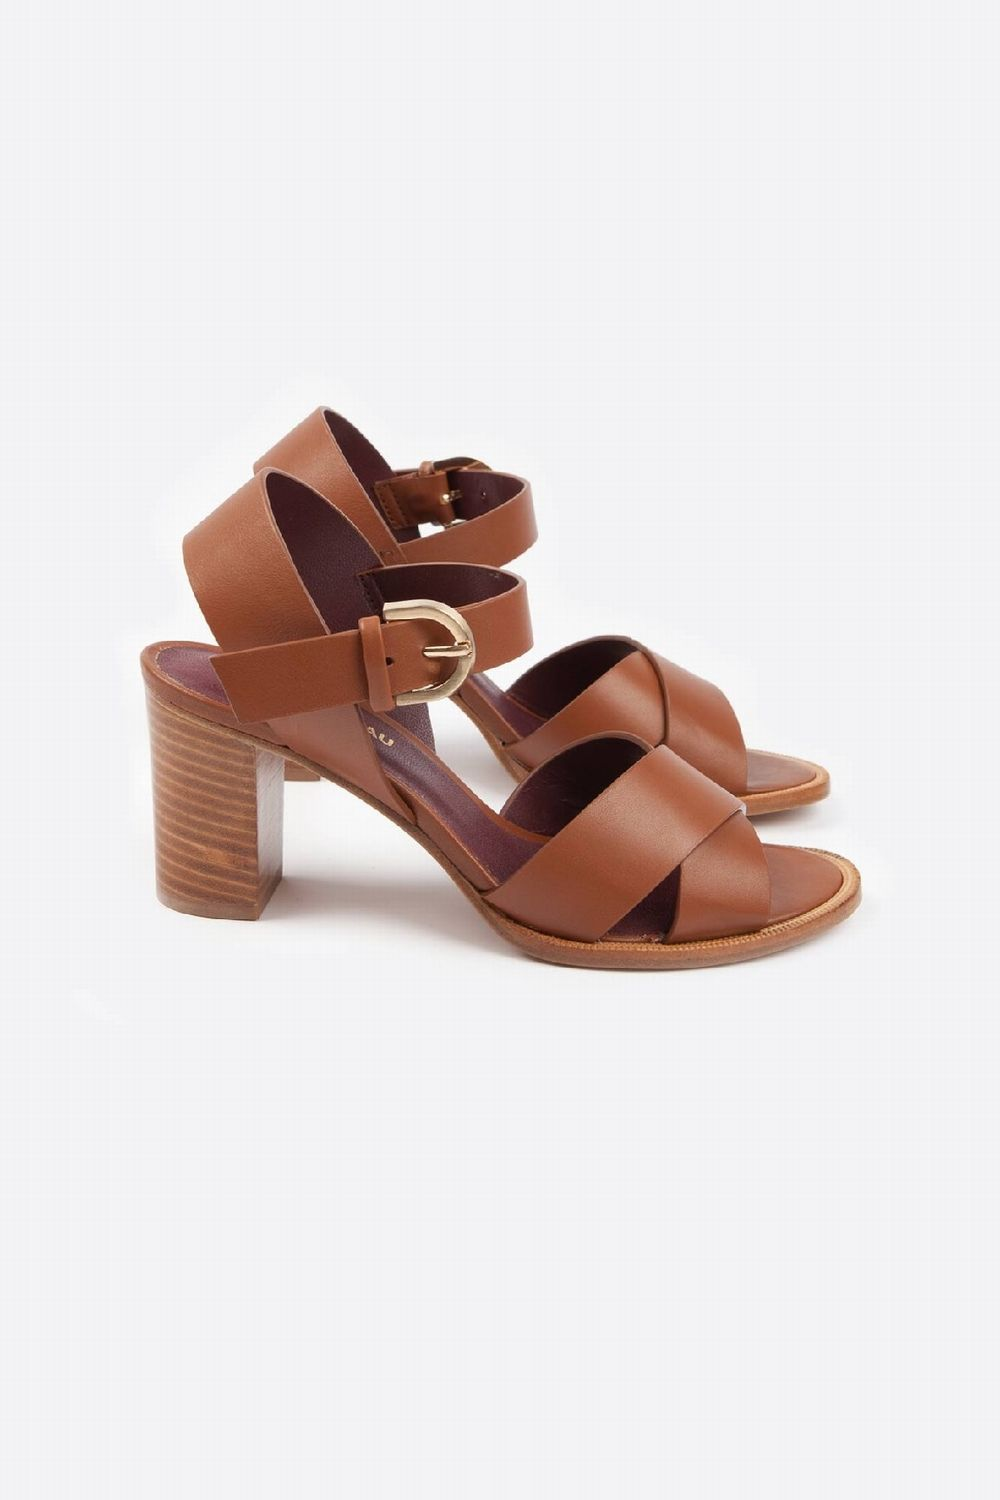 7f01bcac8e9d0 AVRIL GAU - SANDALS COQUILLE | CENTRE COMMERCIAL | shoes | Sandals ...